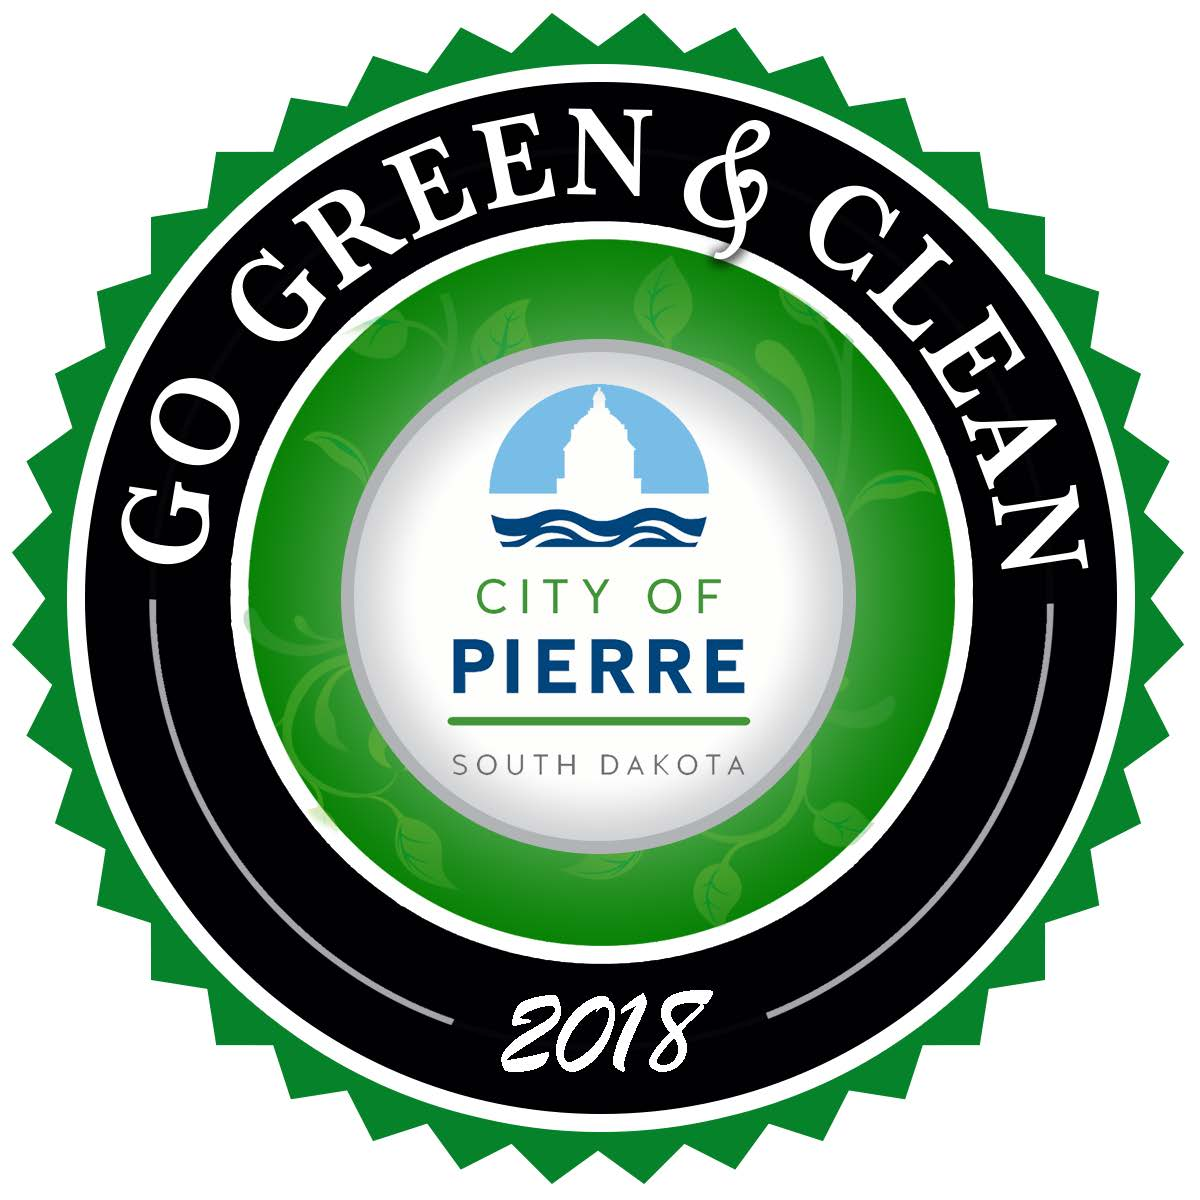 GO GREEN AND CLEAN LOGO_2018